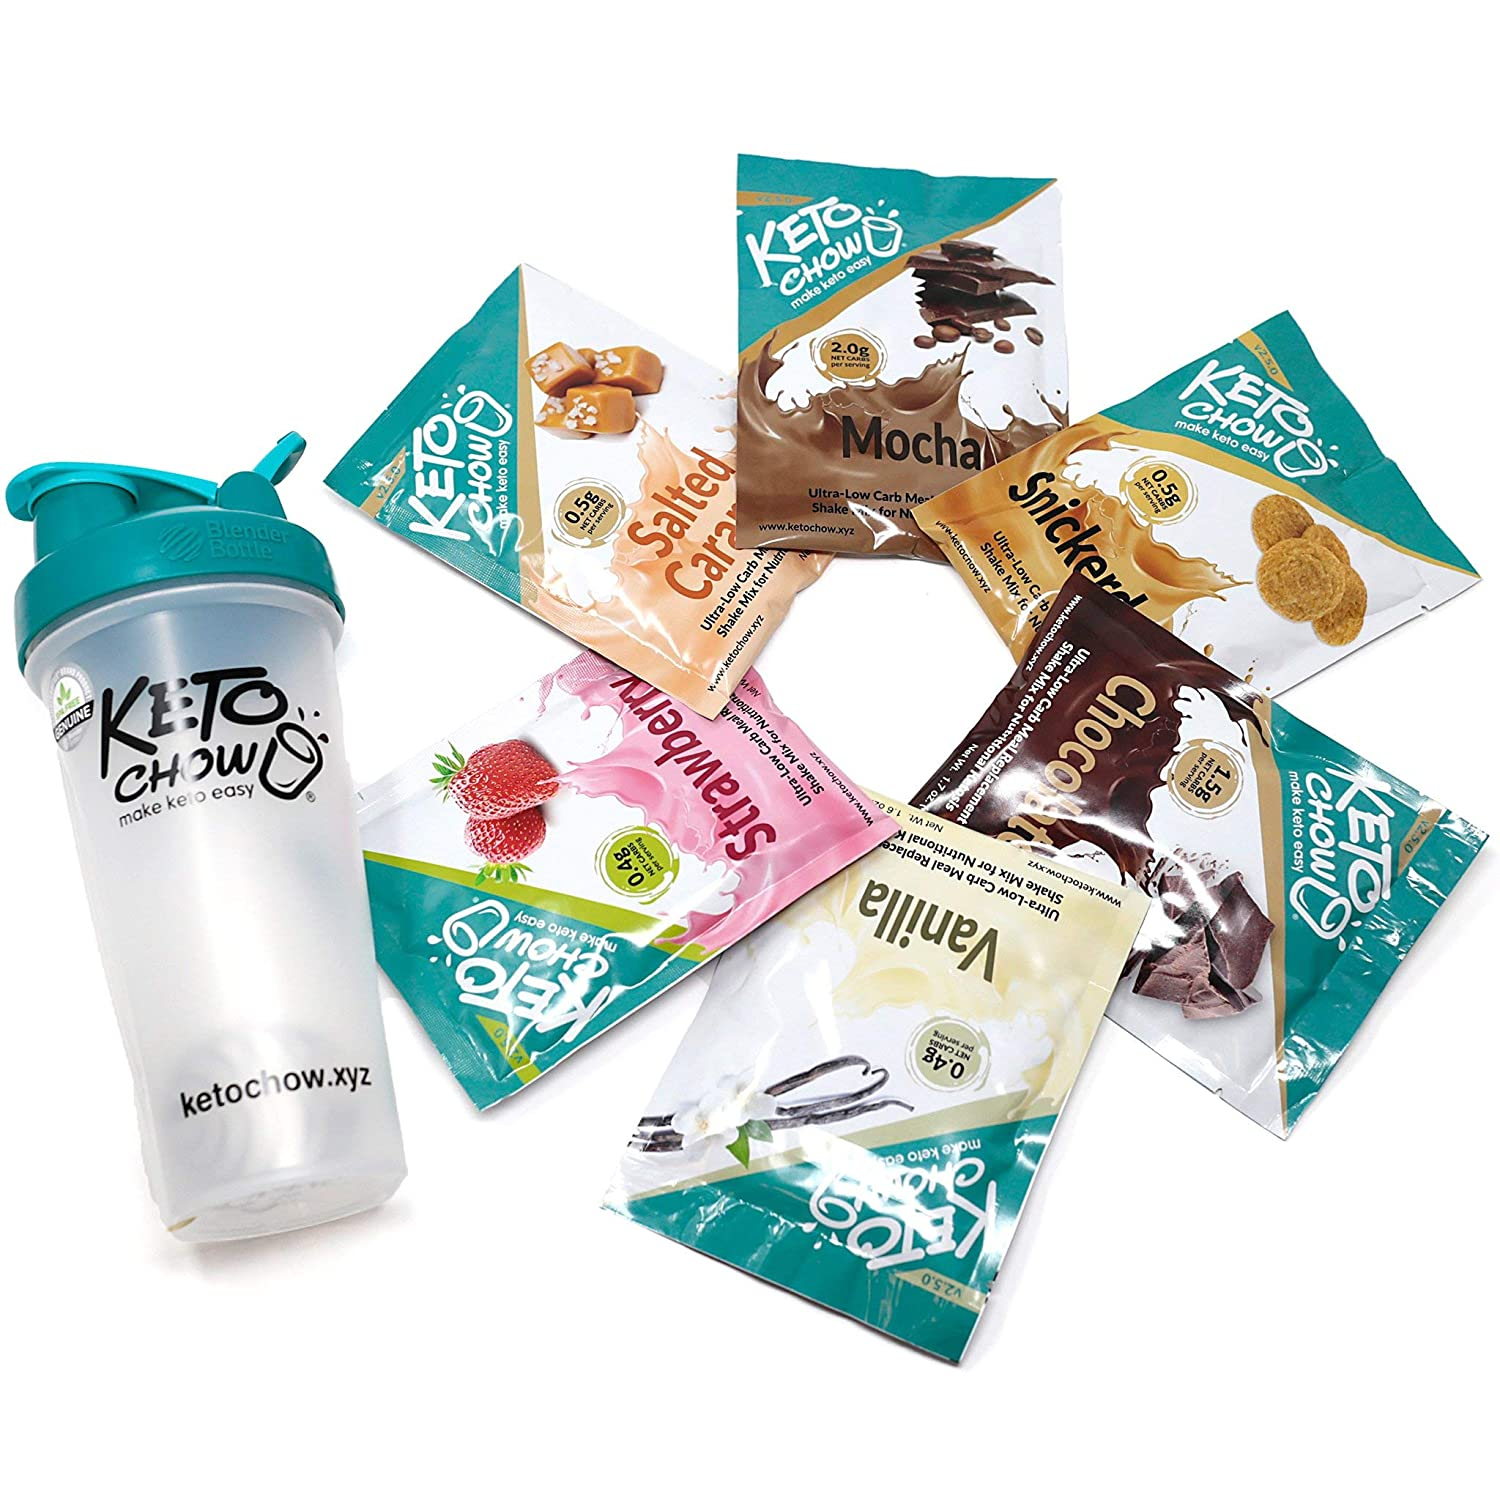 sold out Keto Chow Meal Replacement Shake Max 49% OFF Complete Nutritionally